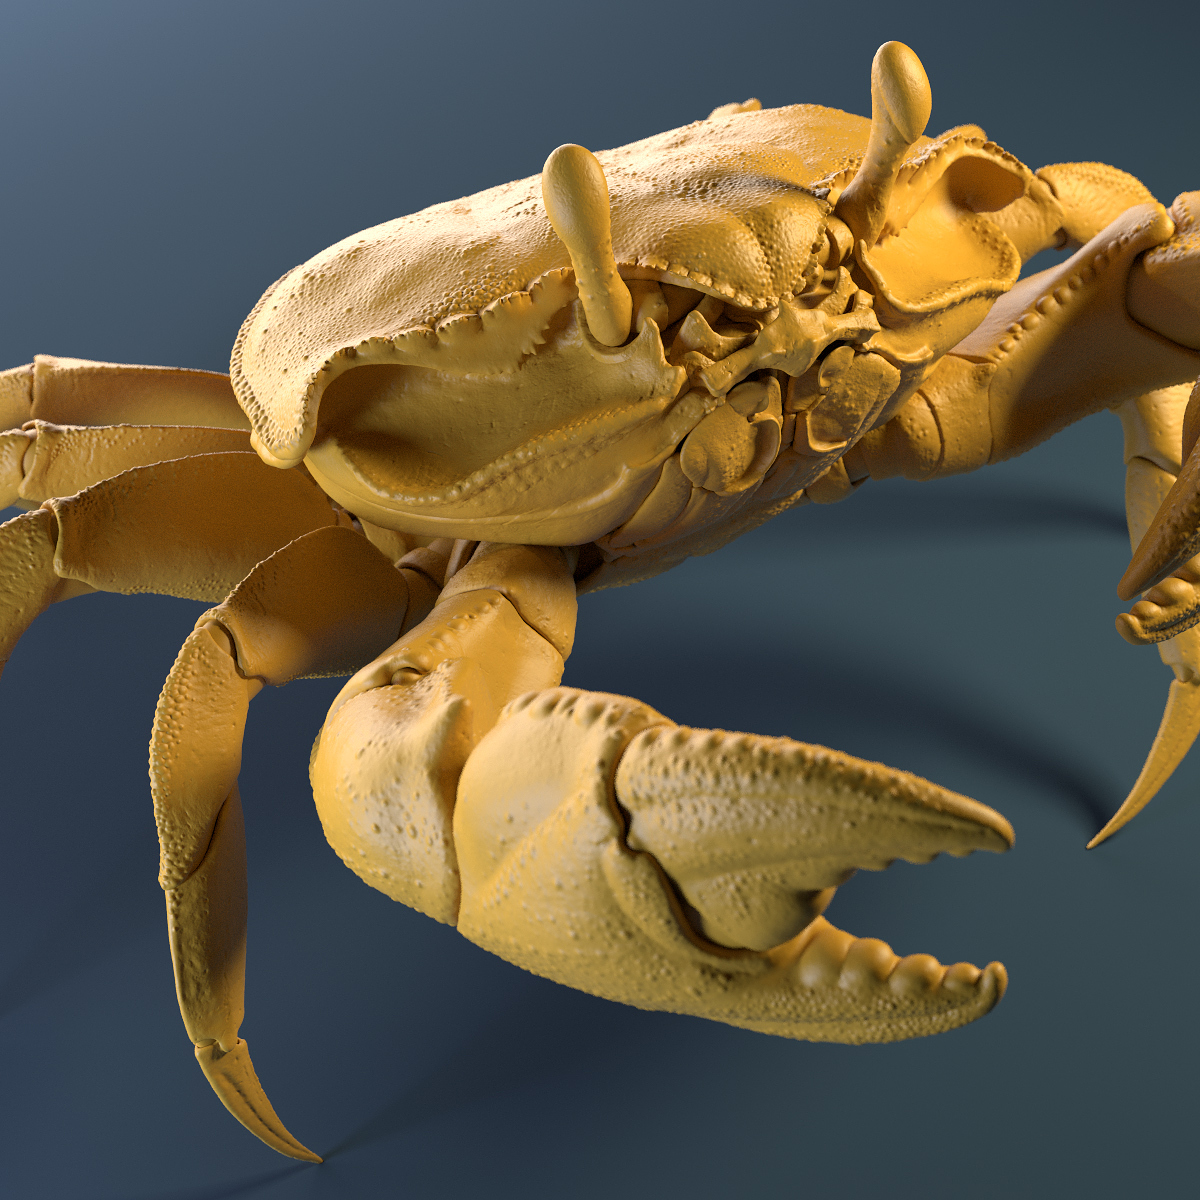 Crab_Yellow_Clay_Shot_04.jpg